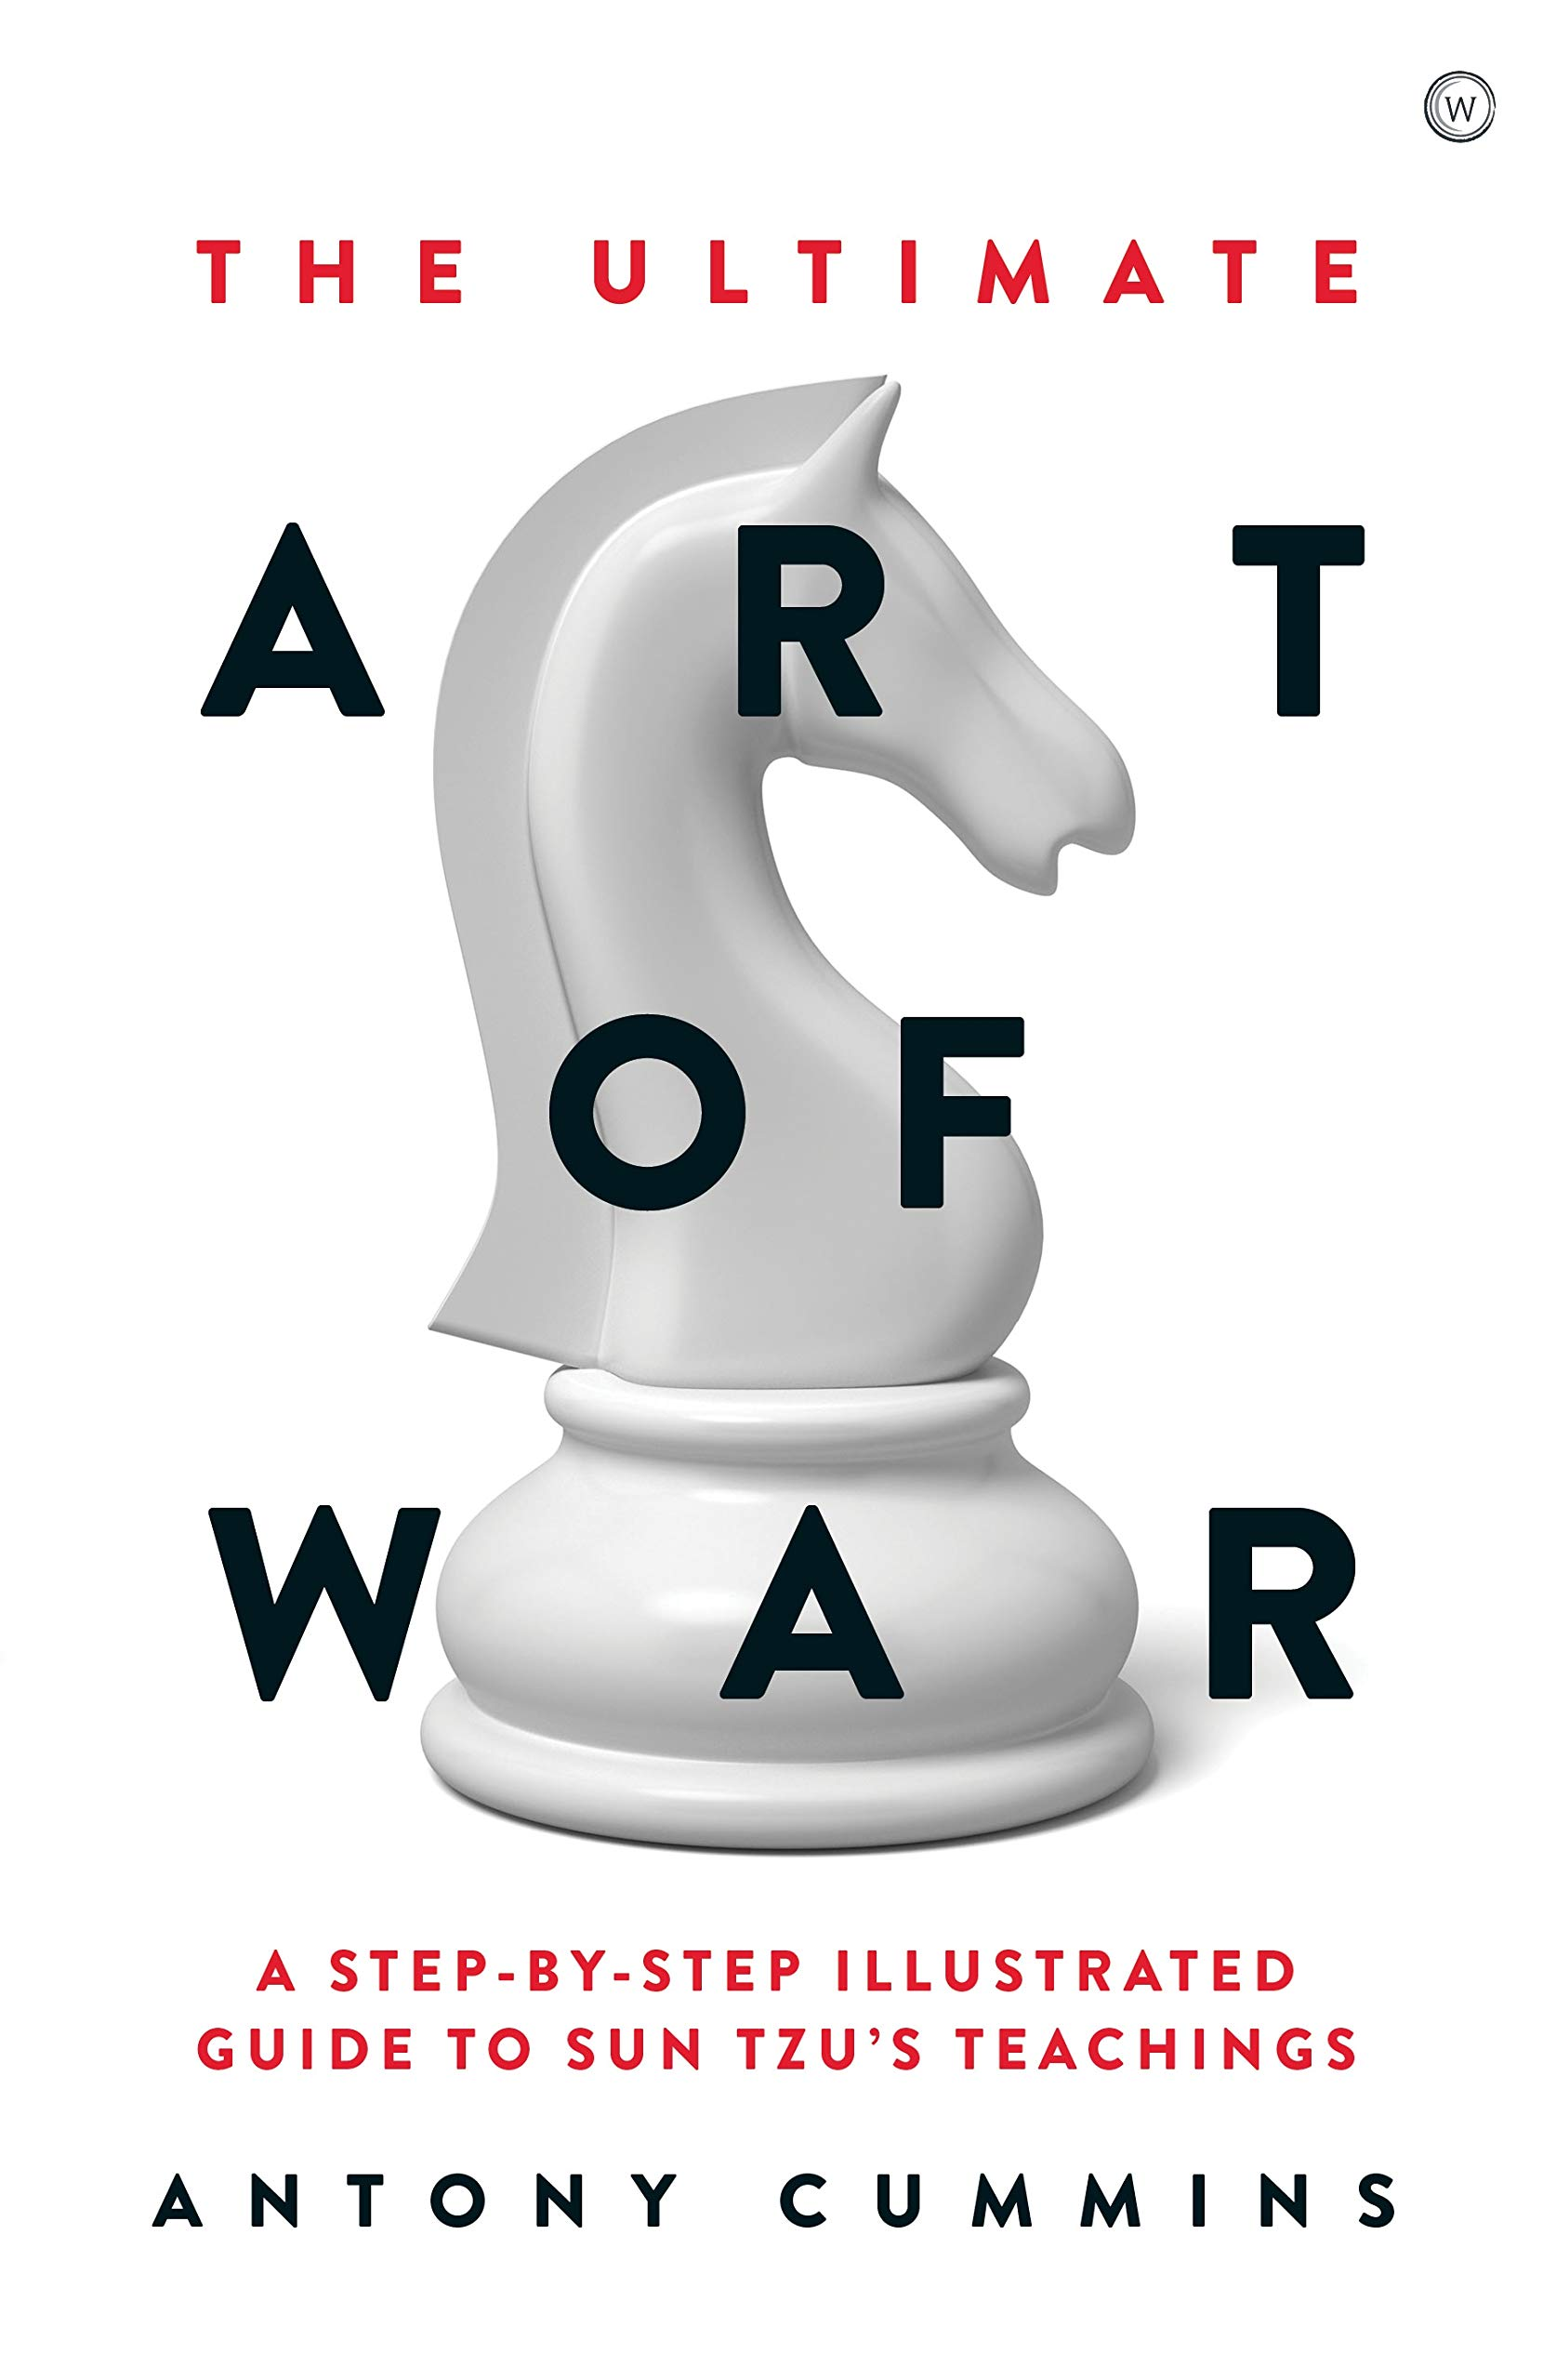 The Ultimate Art Of War  A Step By Step Illustrated Guide To Sun Tzu's Teachings